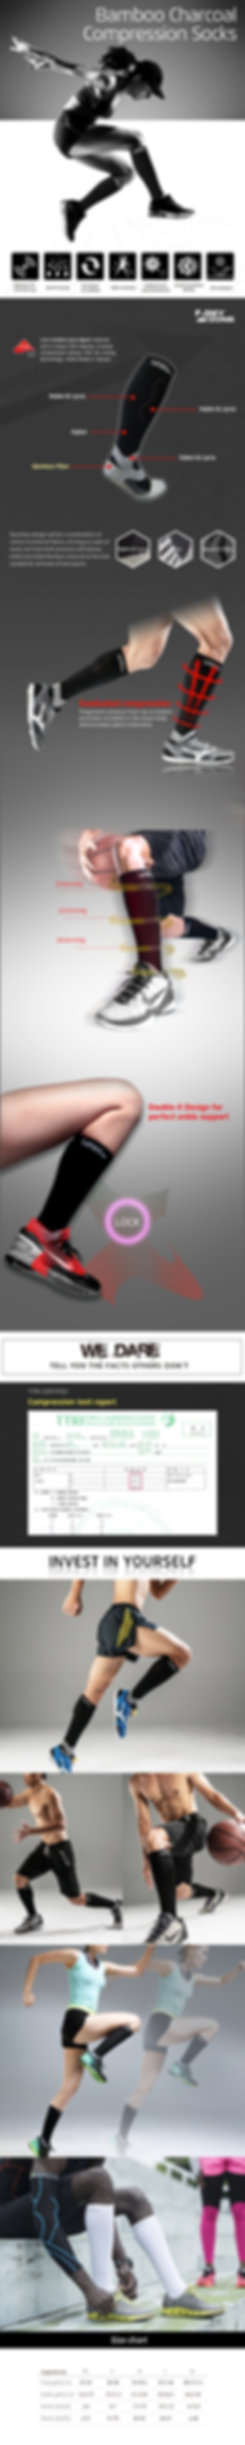 compression gear,bamboo charcoal, compression socks, socks, compression, bamboo charcoal socks